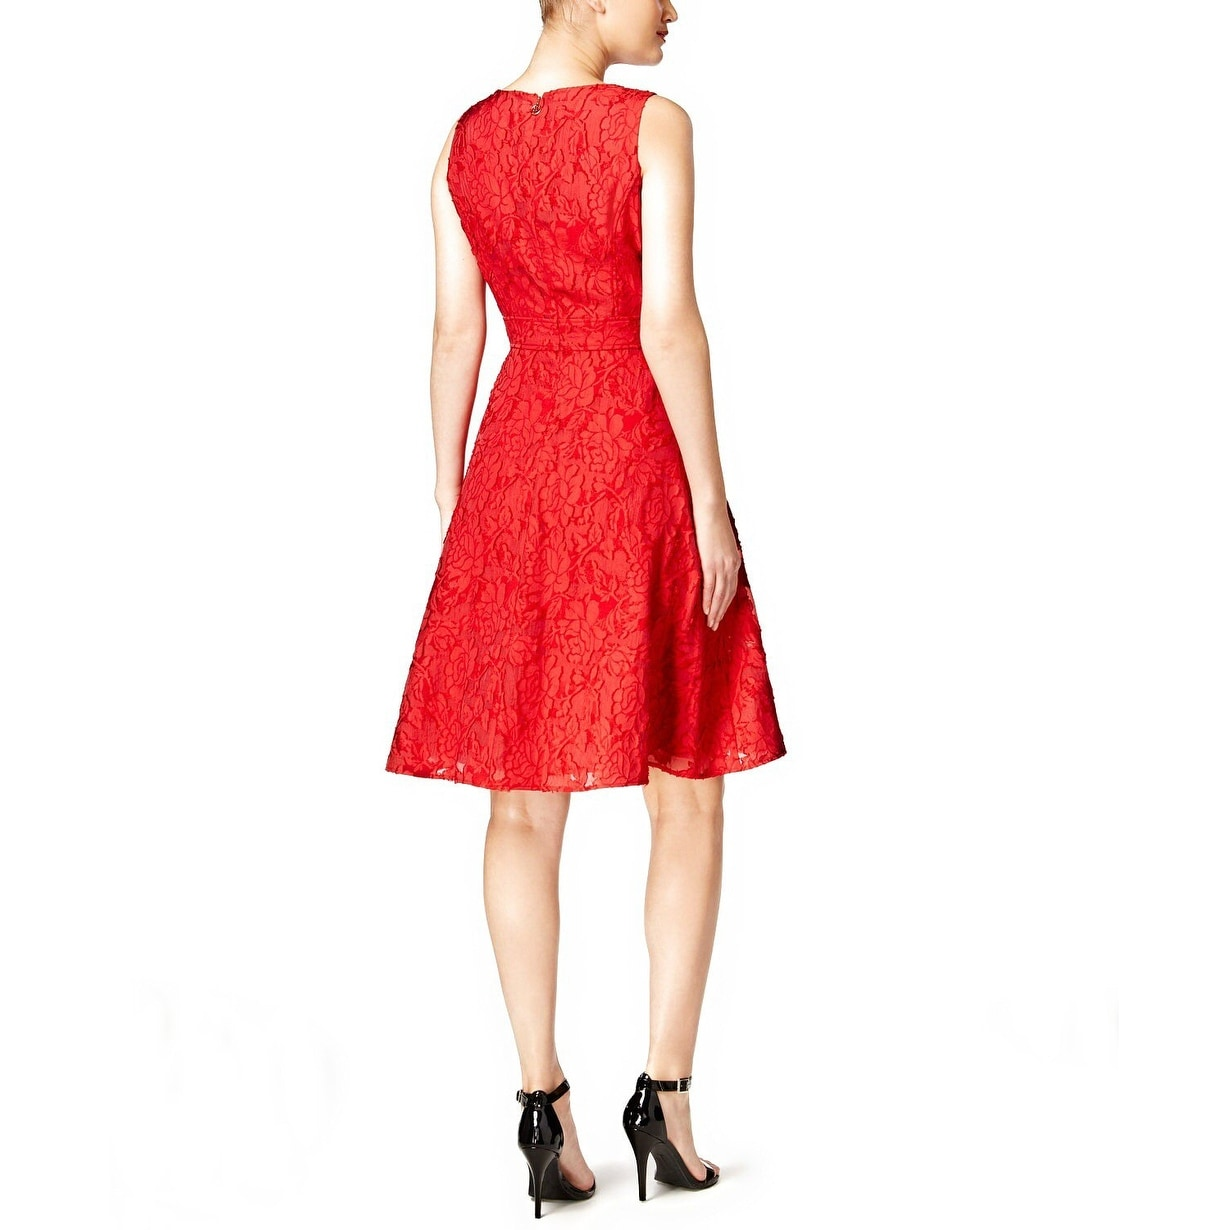 8ab755d03f0315 Shop Tommy Hilfiger Clipped Floral Organza Fit Flare Dress Red - 8 - Free  Shipping Today - Overstock - 20537507